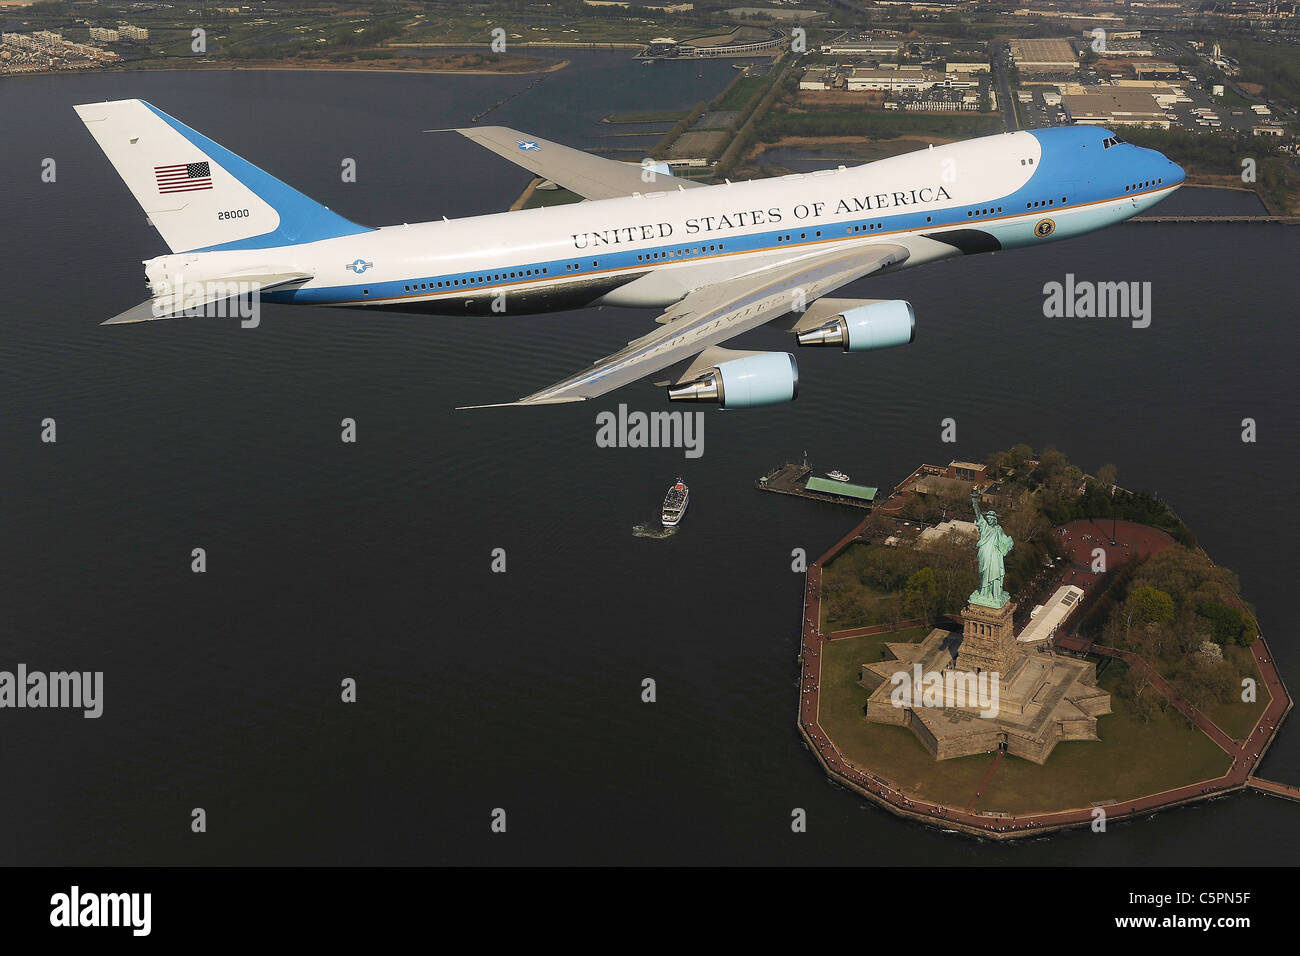 Air Force One, the US Presidents airplane flies over the Statue of Liberty - Stock Image